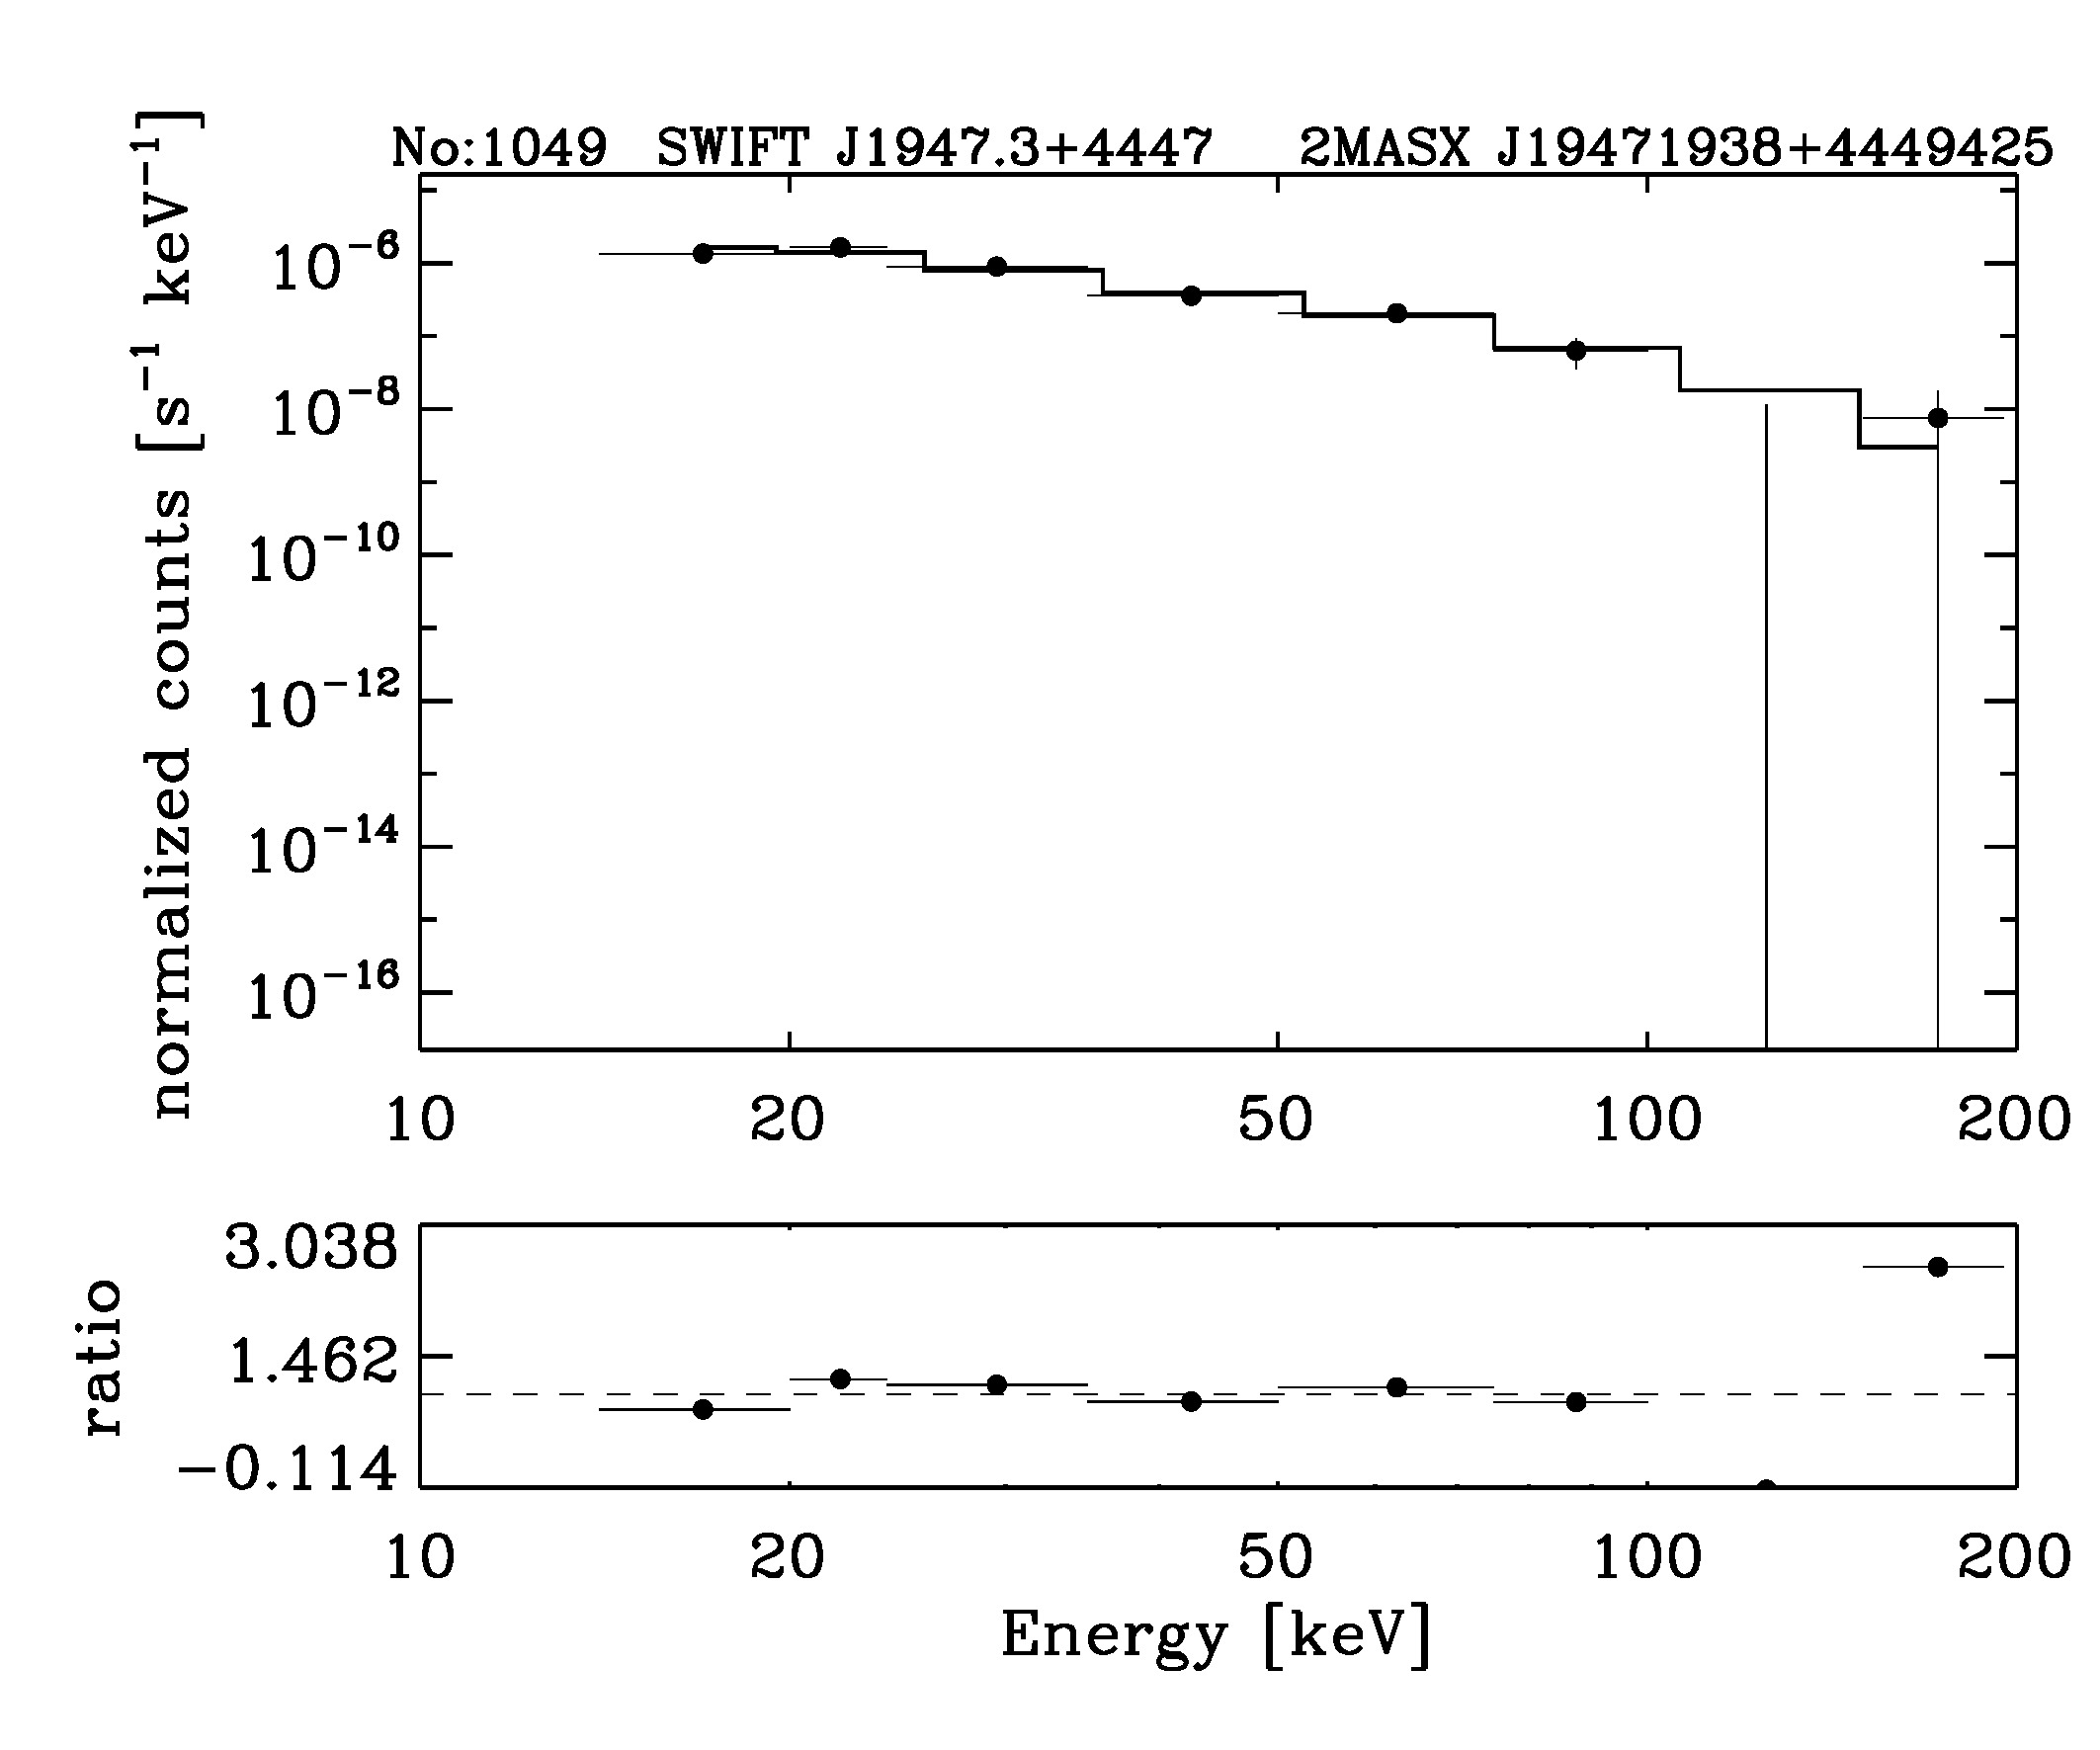 BAT Spectrum for SWIFT J1947.3+4447